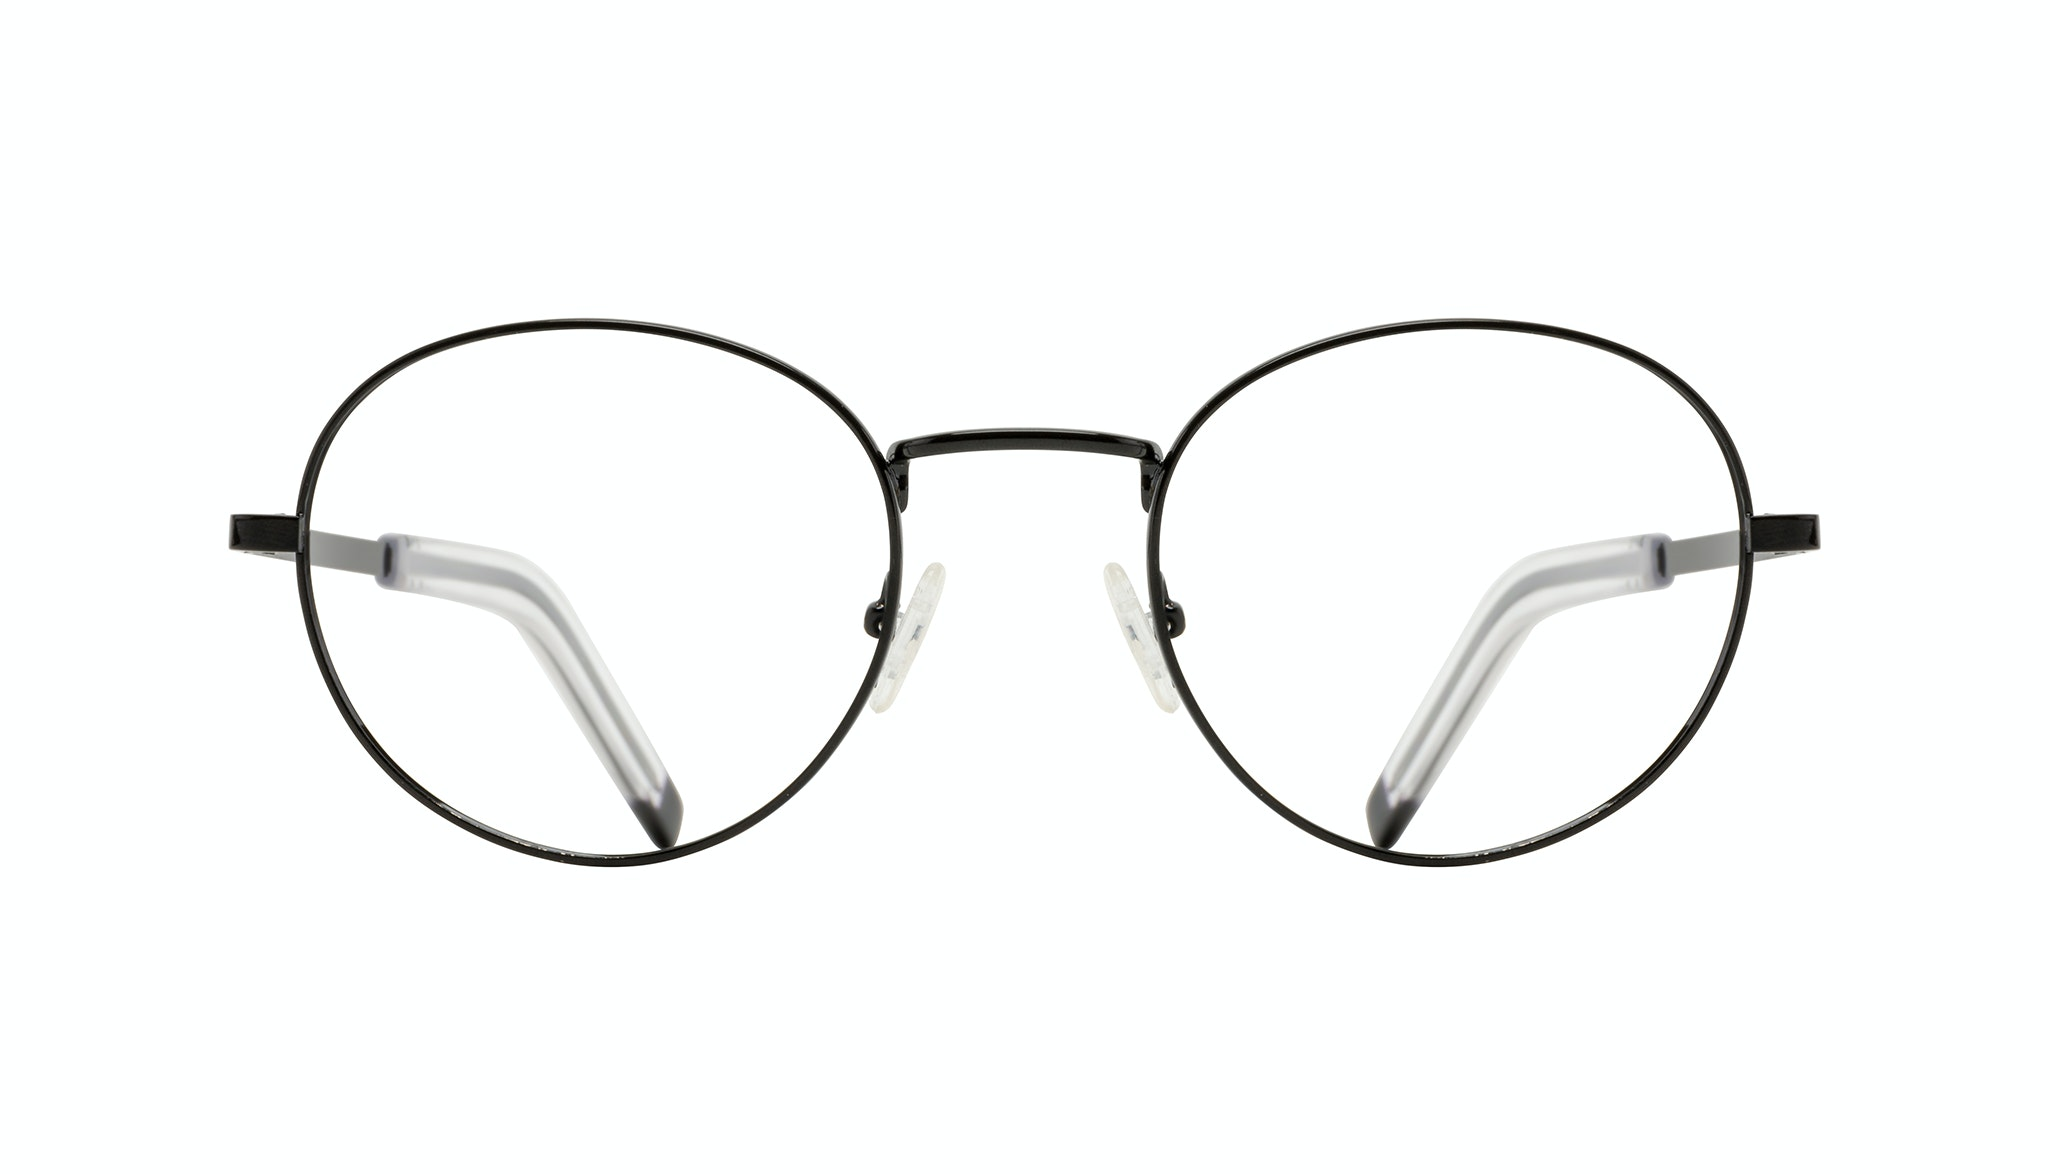 Affordable Fashion Glasses Round Eyeglasses Men Lean XL Black